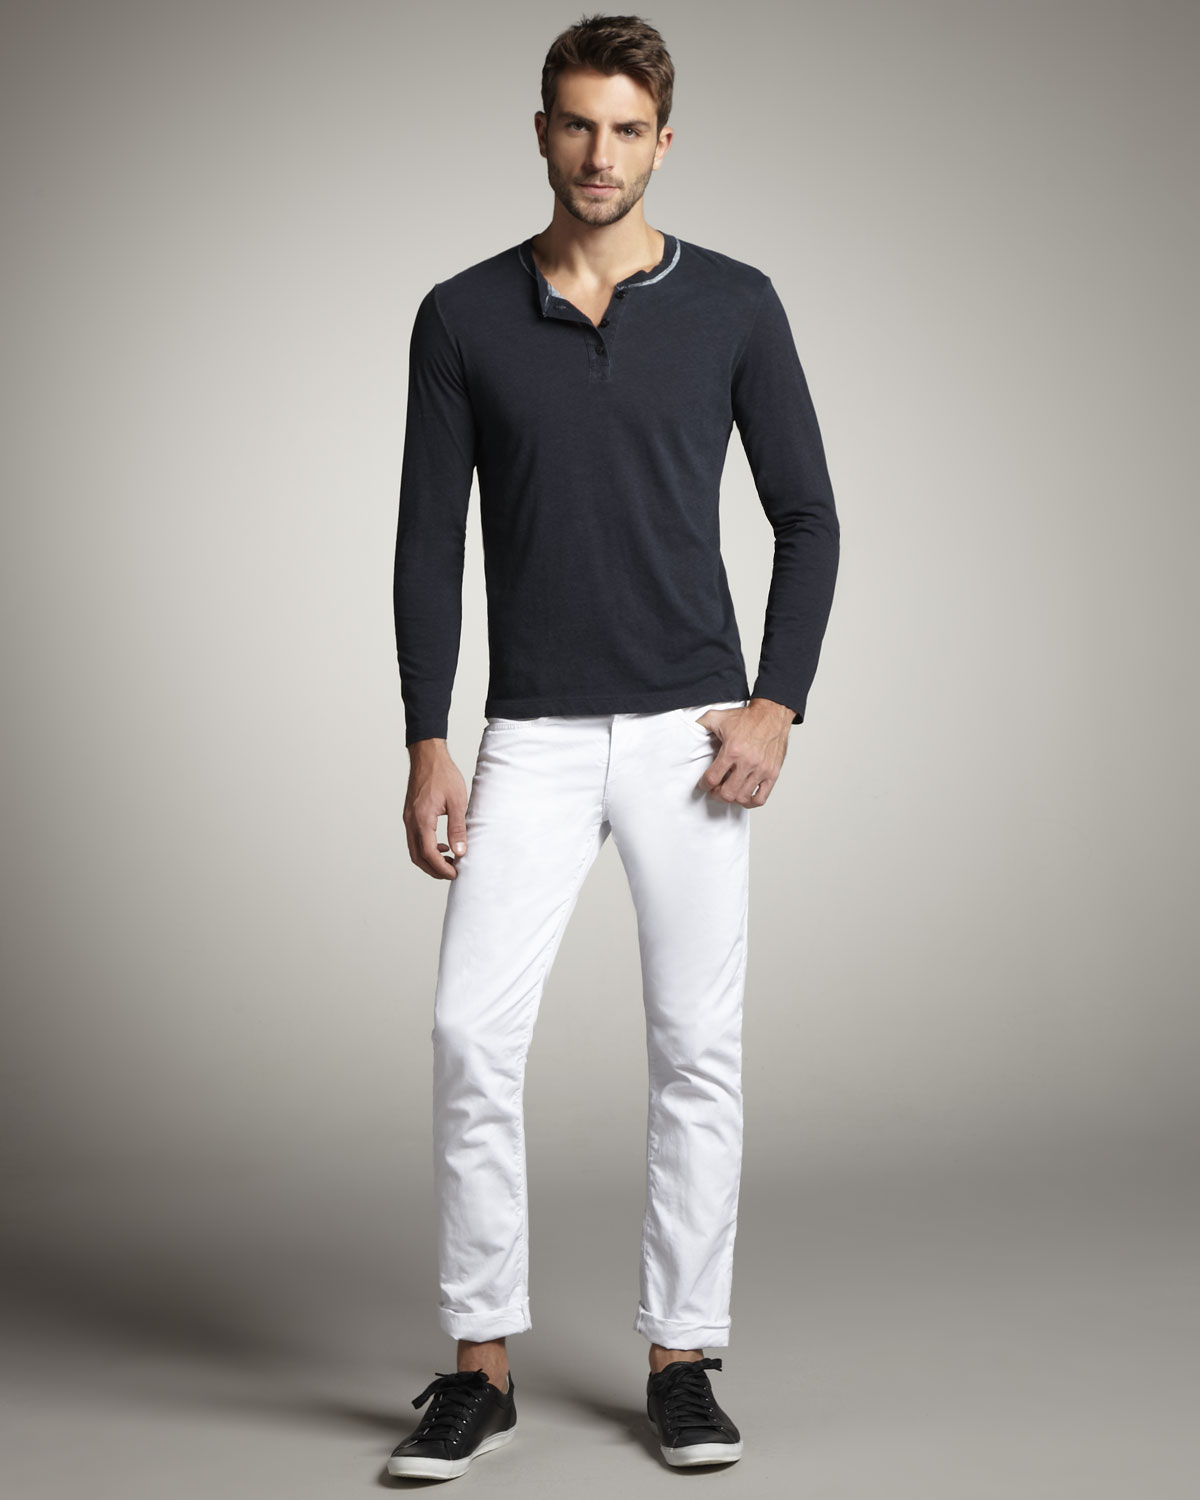 Find great deals on eBay for mens white denim jeans. Shop with confidence.